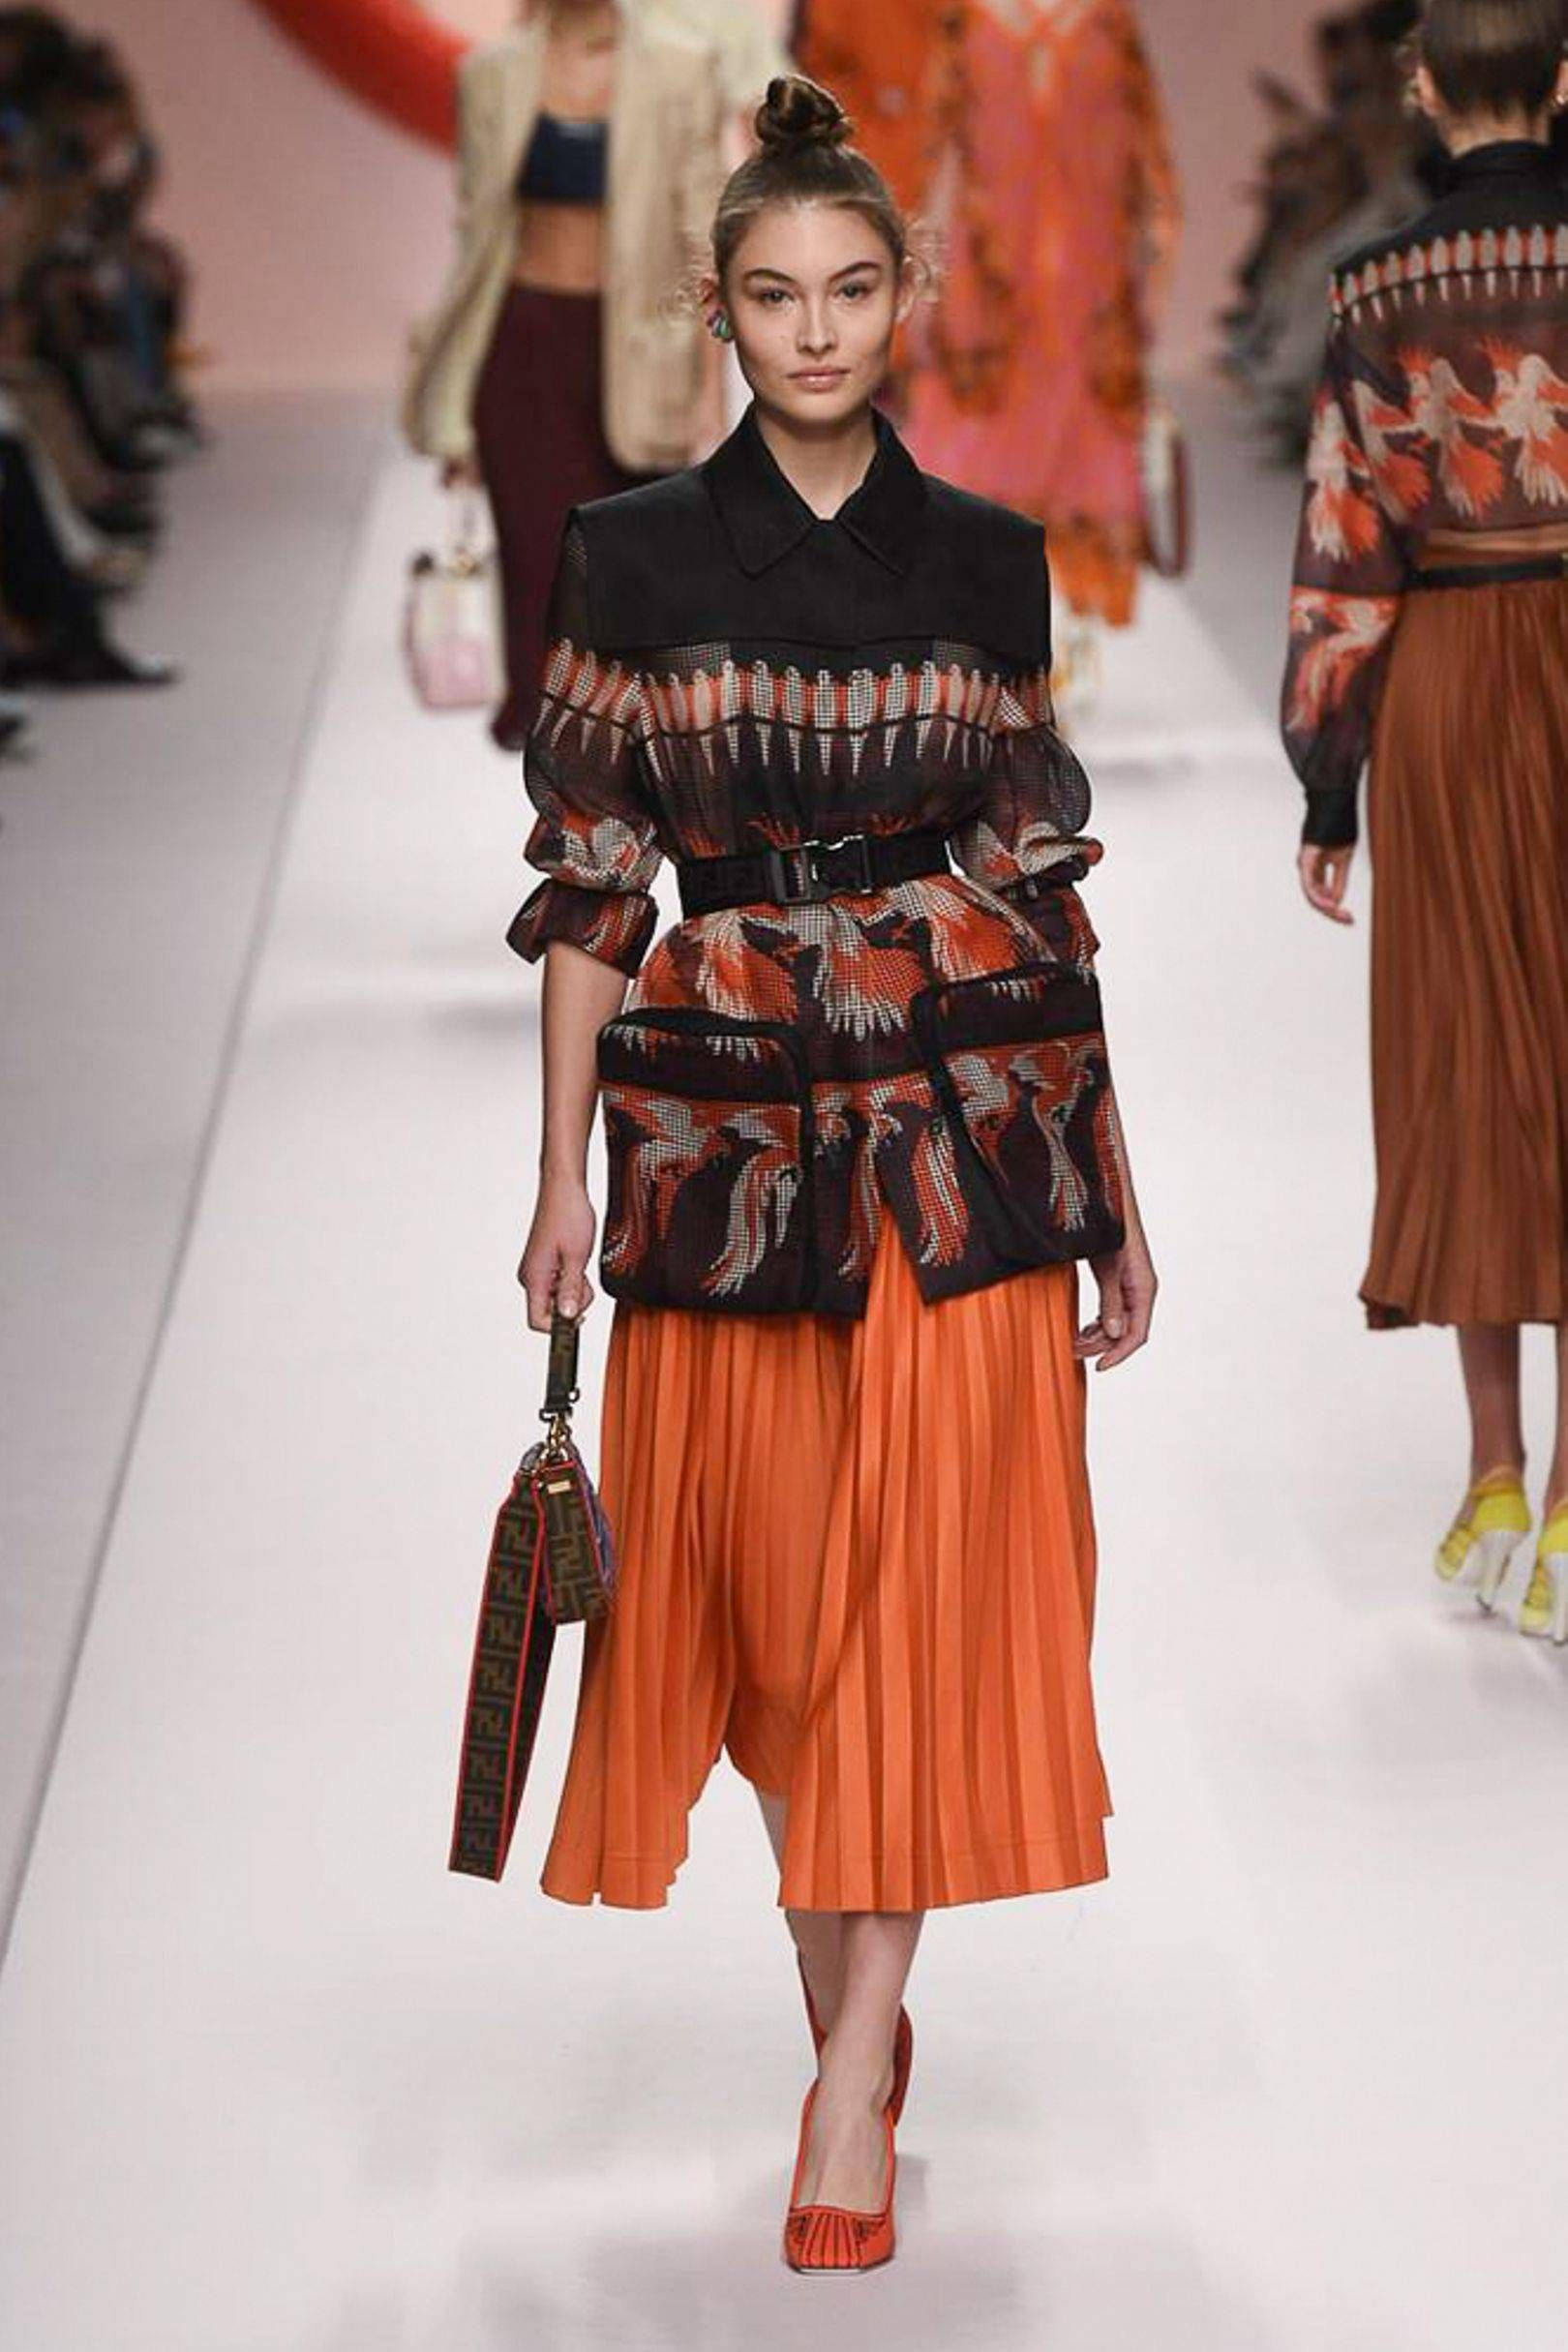 Hermes SpringSummer 2019 RTW Plays With Pops of Colors Fine Tailoring forecast